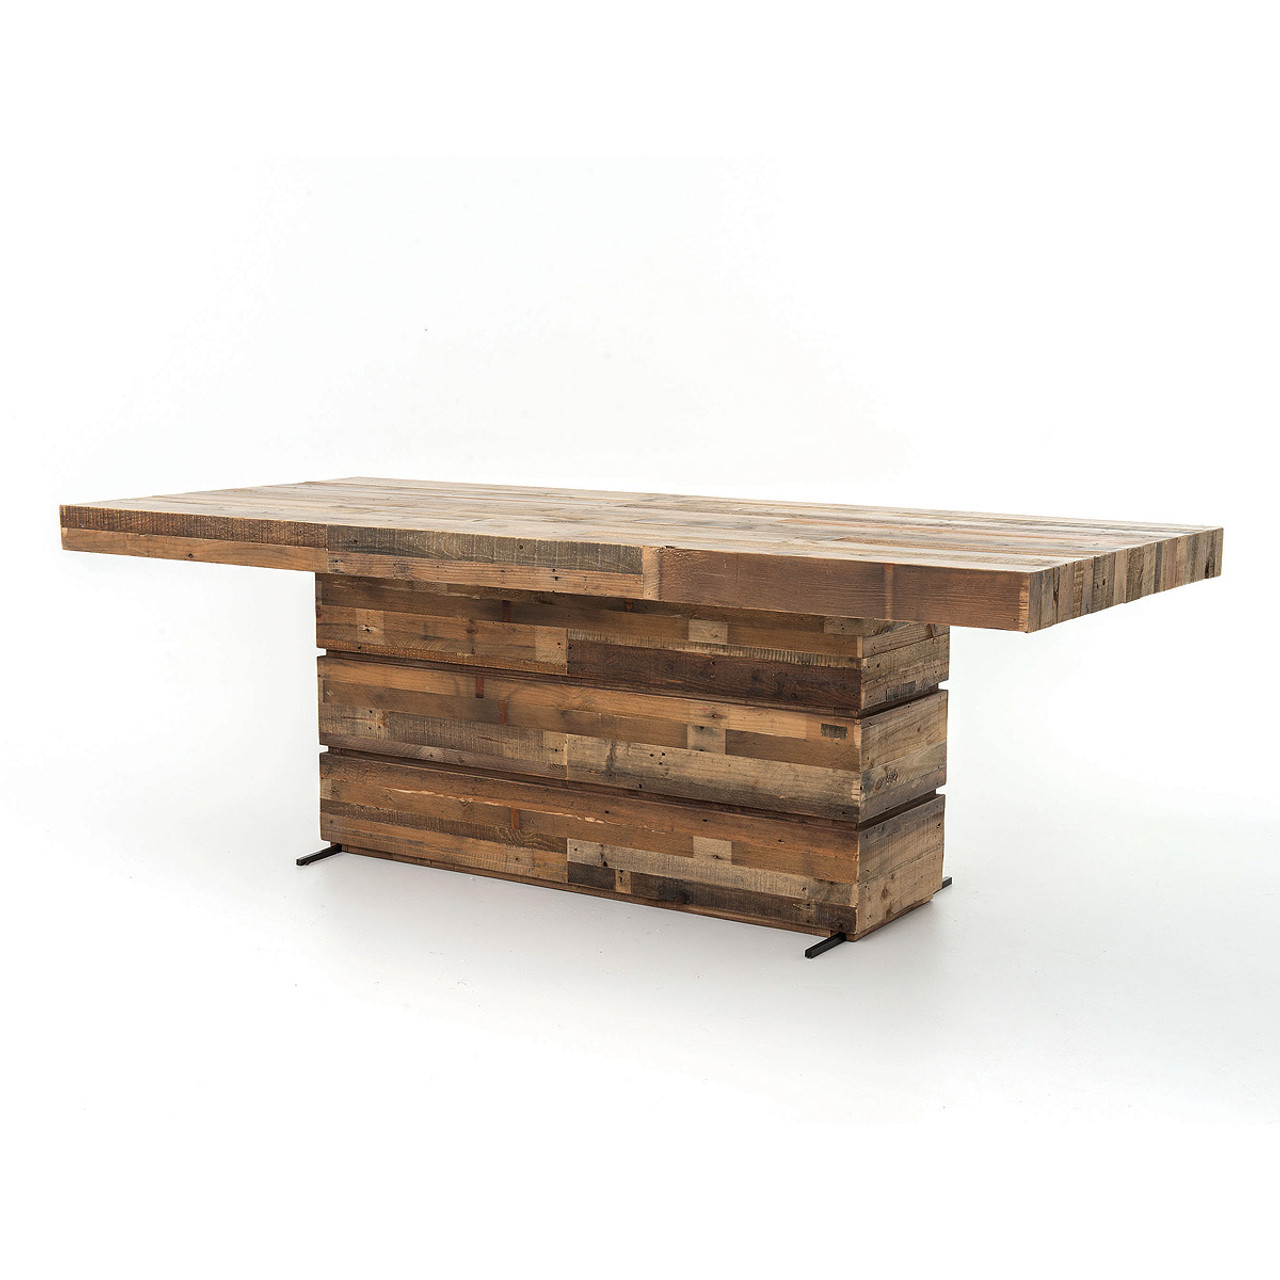 Angora Rustic Reclaimed Wood Dining Table 89""